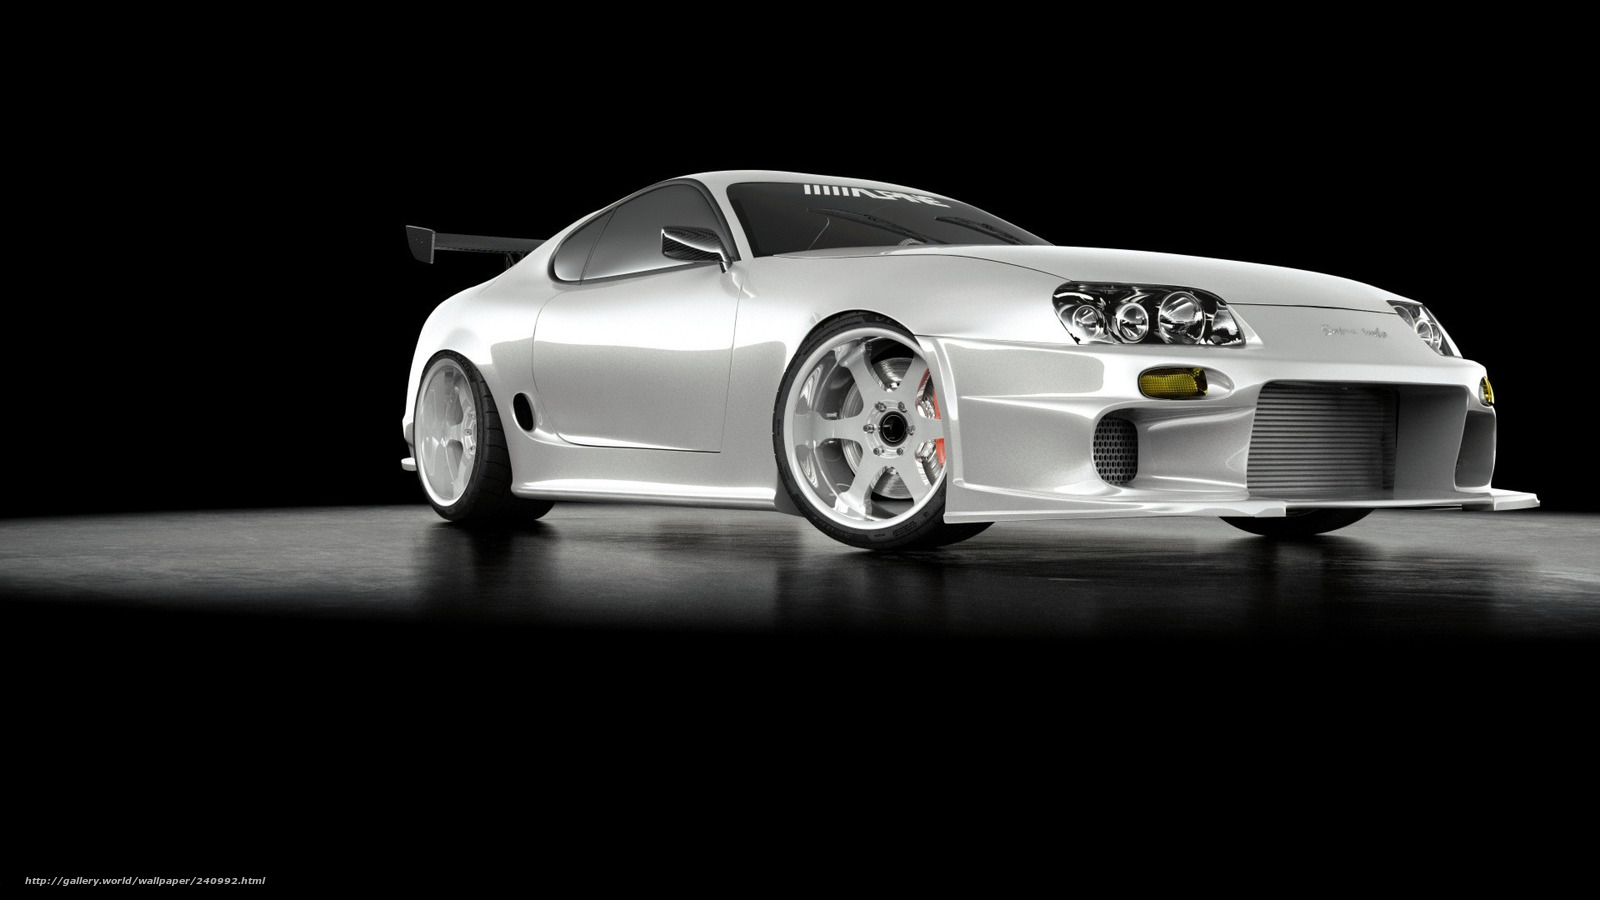 Supra Turbo Wallpaper